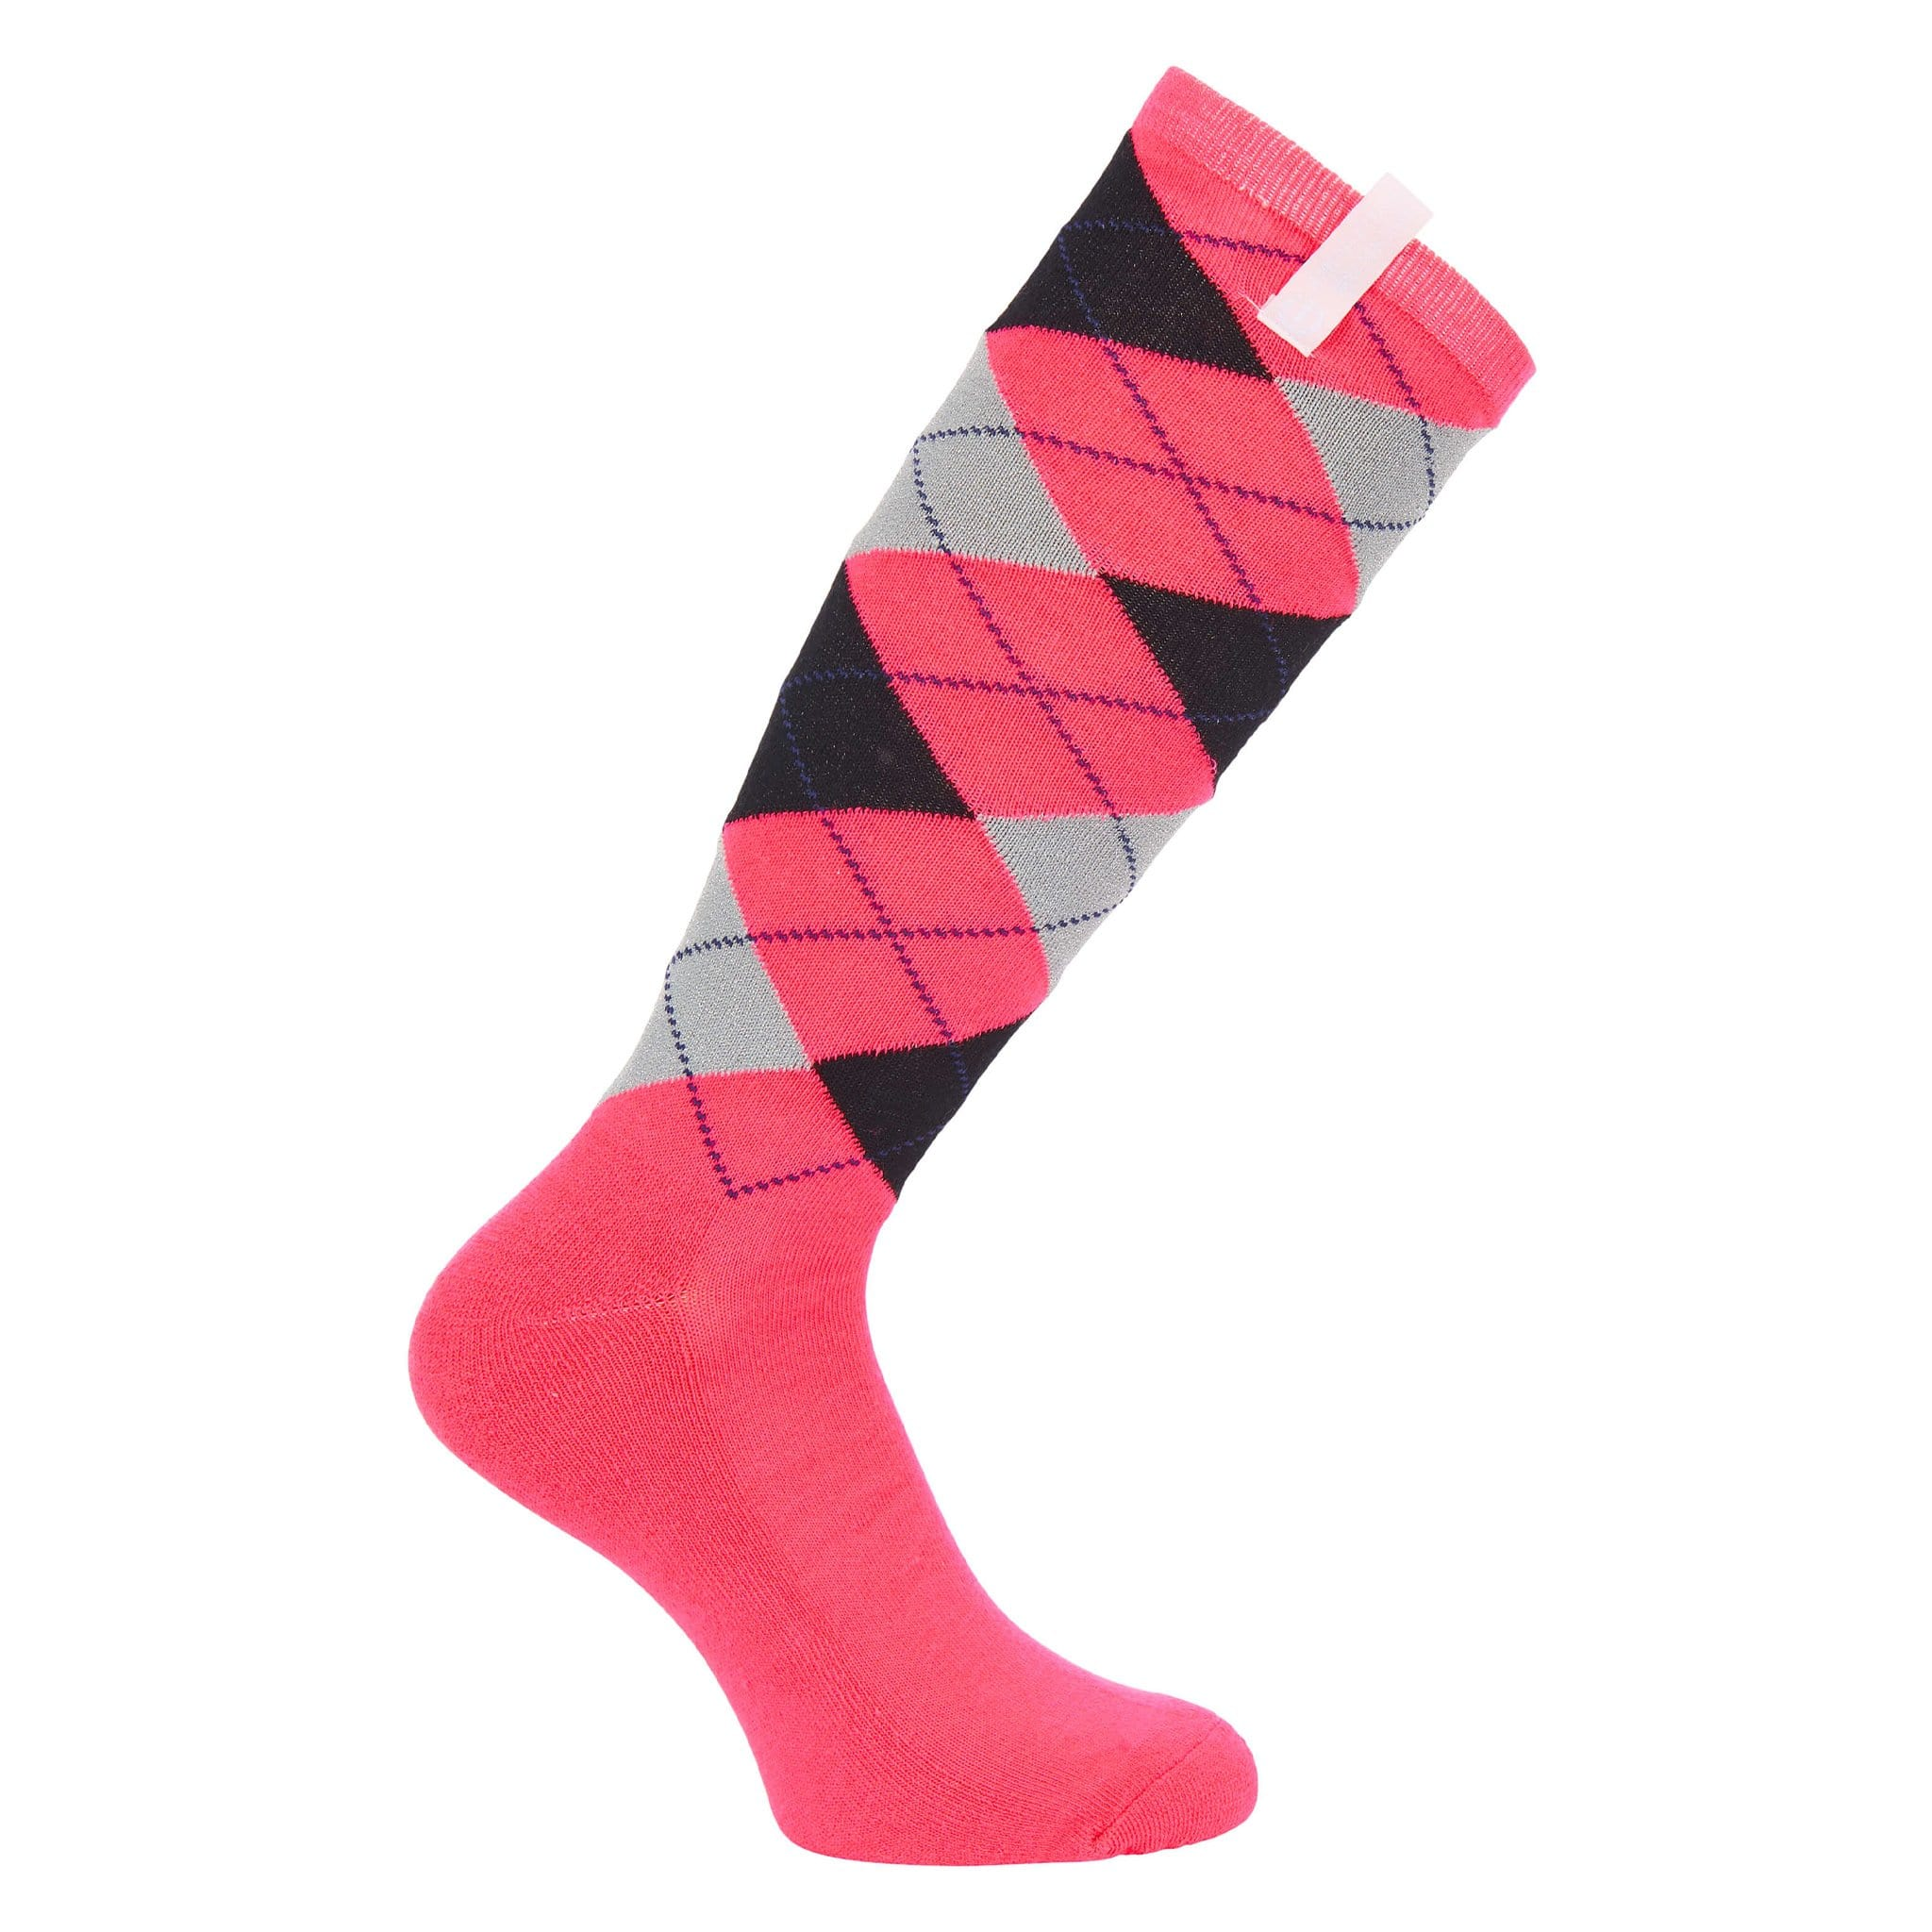 Imperial Riding Simple Riding Socks KL95318000 in Diva Pink Argyle with black and grey